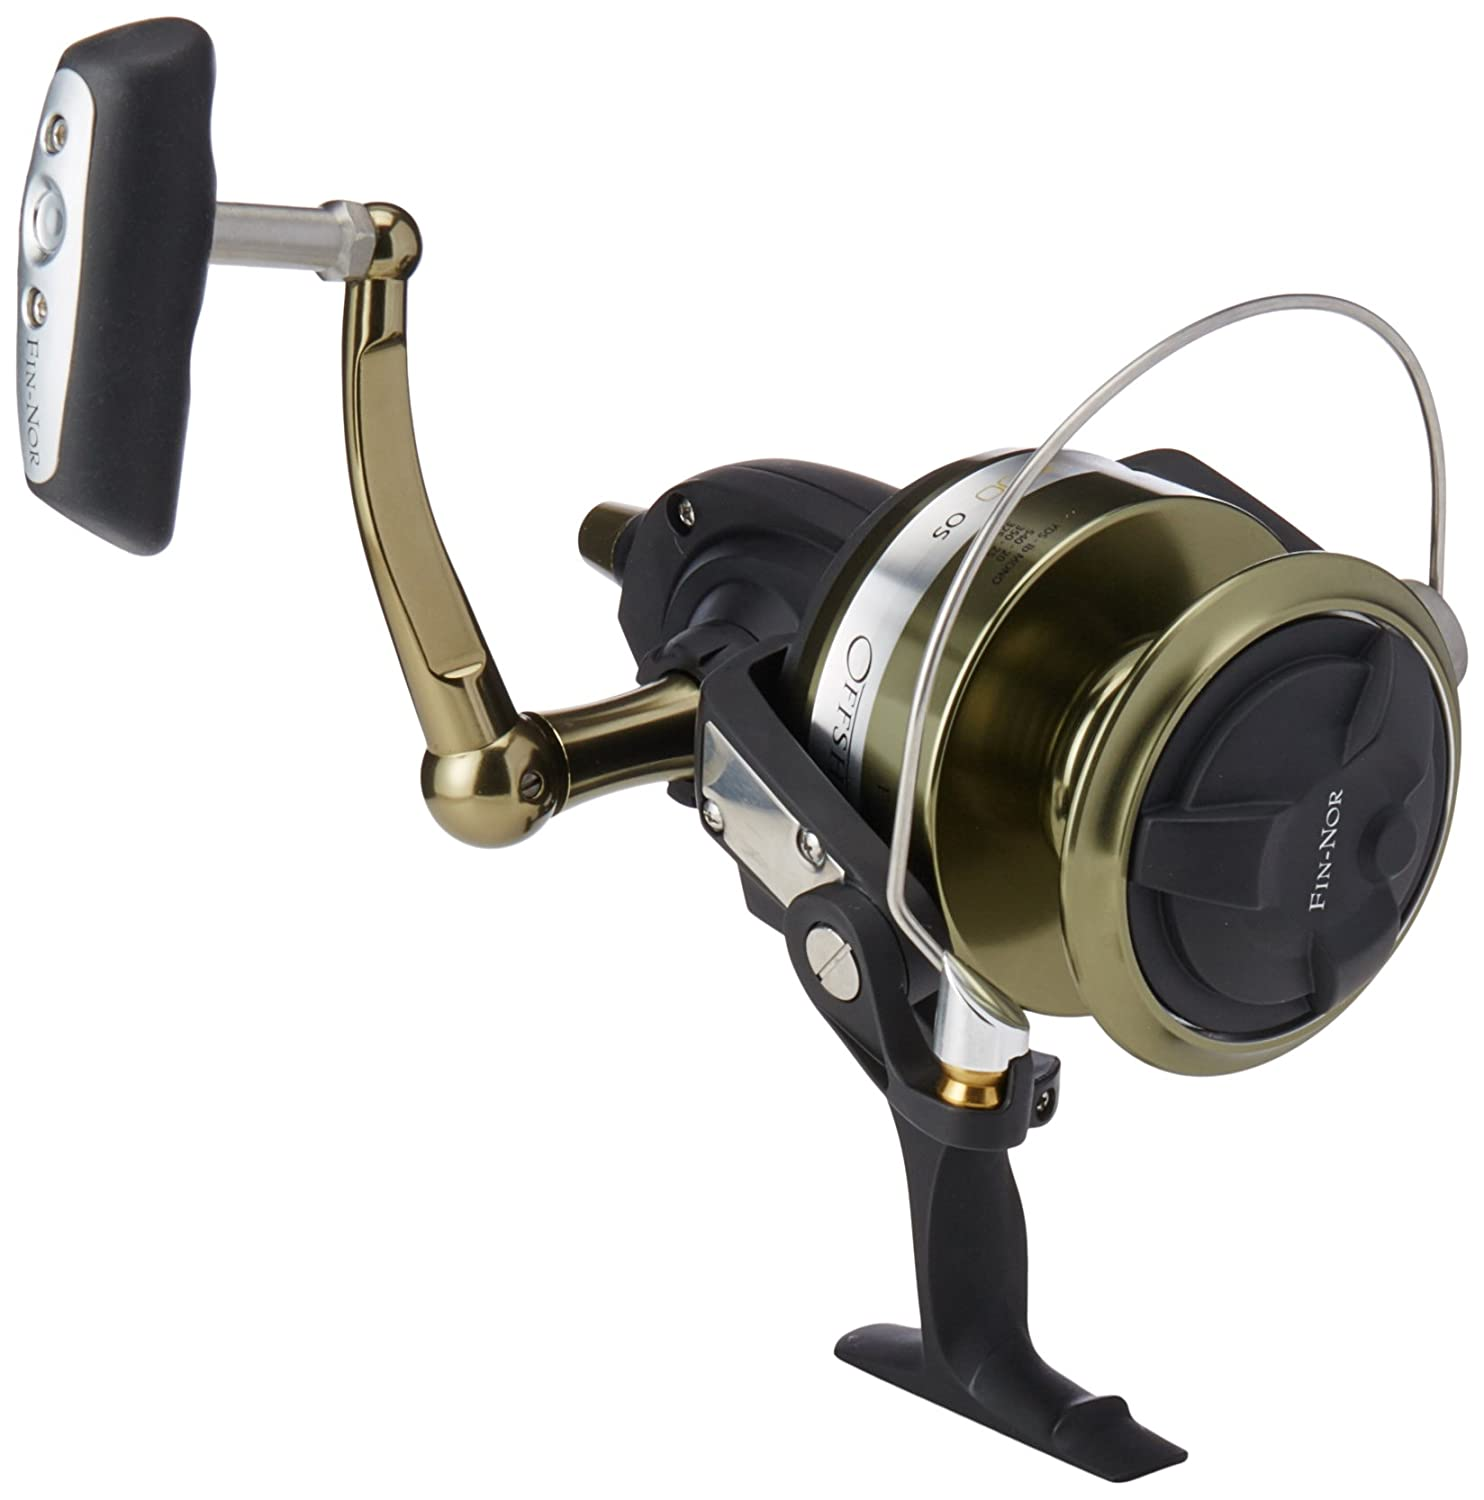 Fin Nor Offshore Spin Fishing Reel